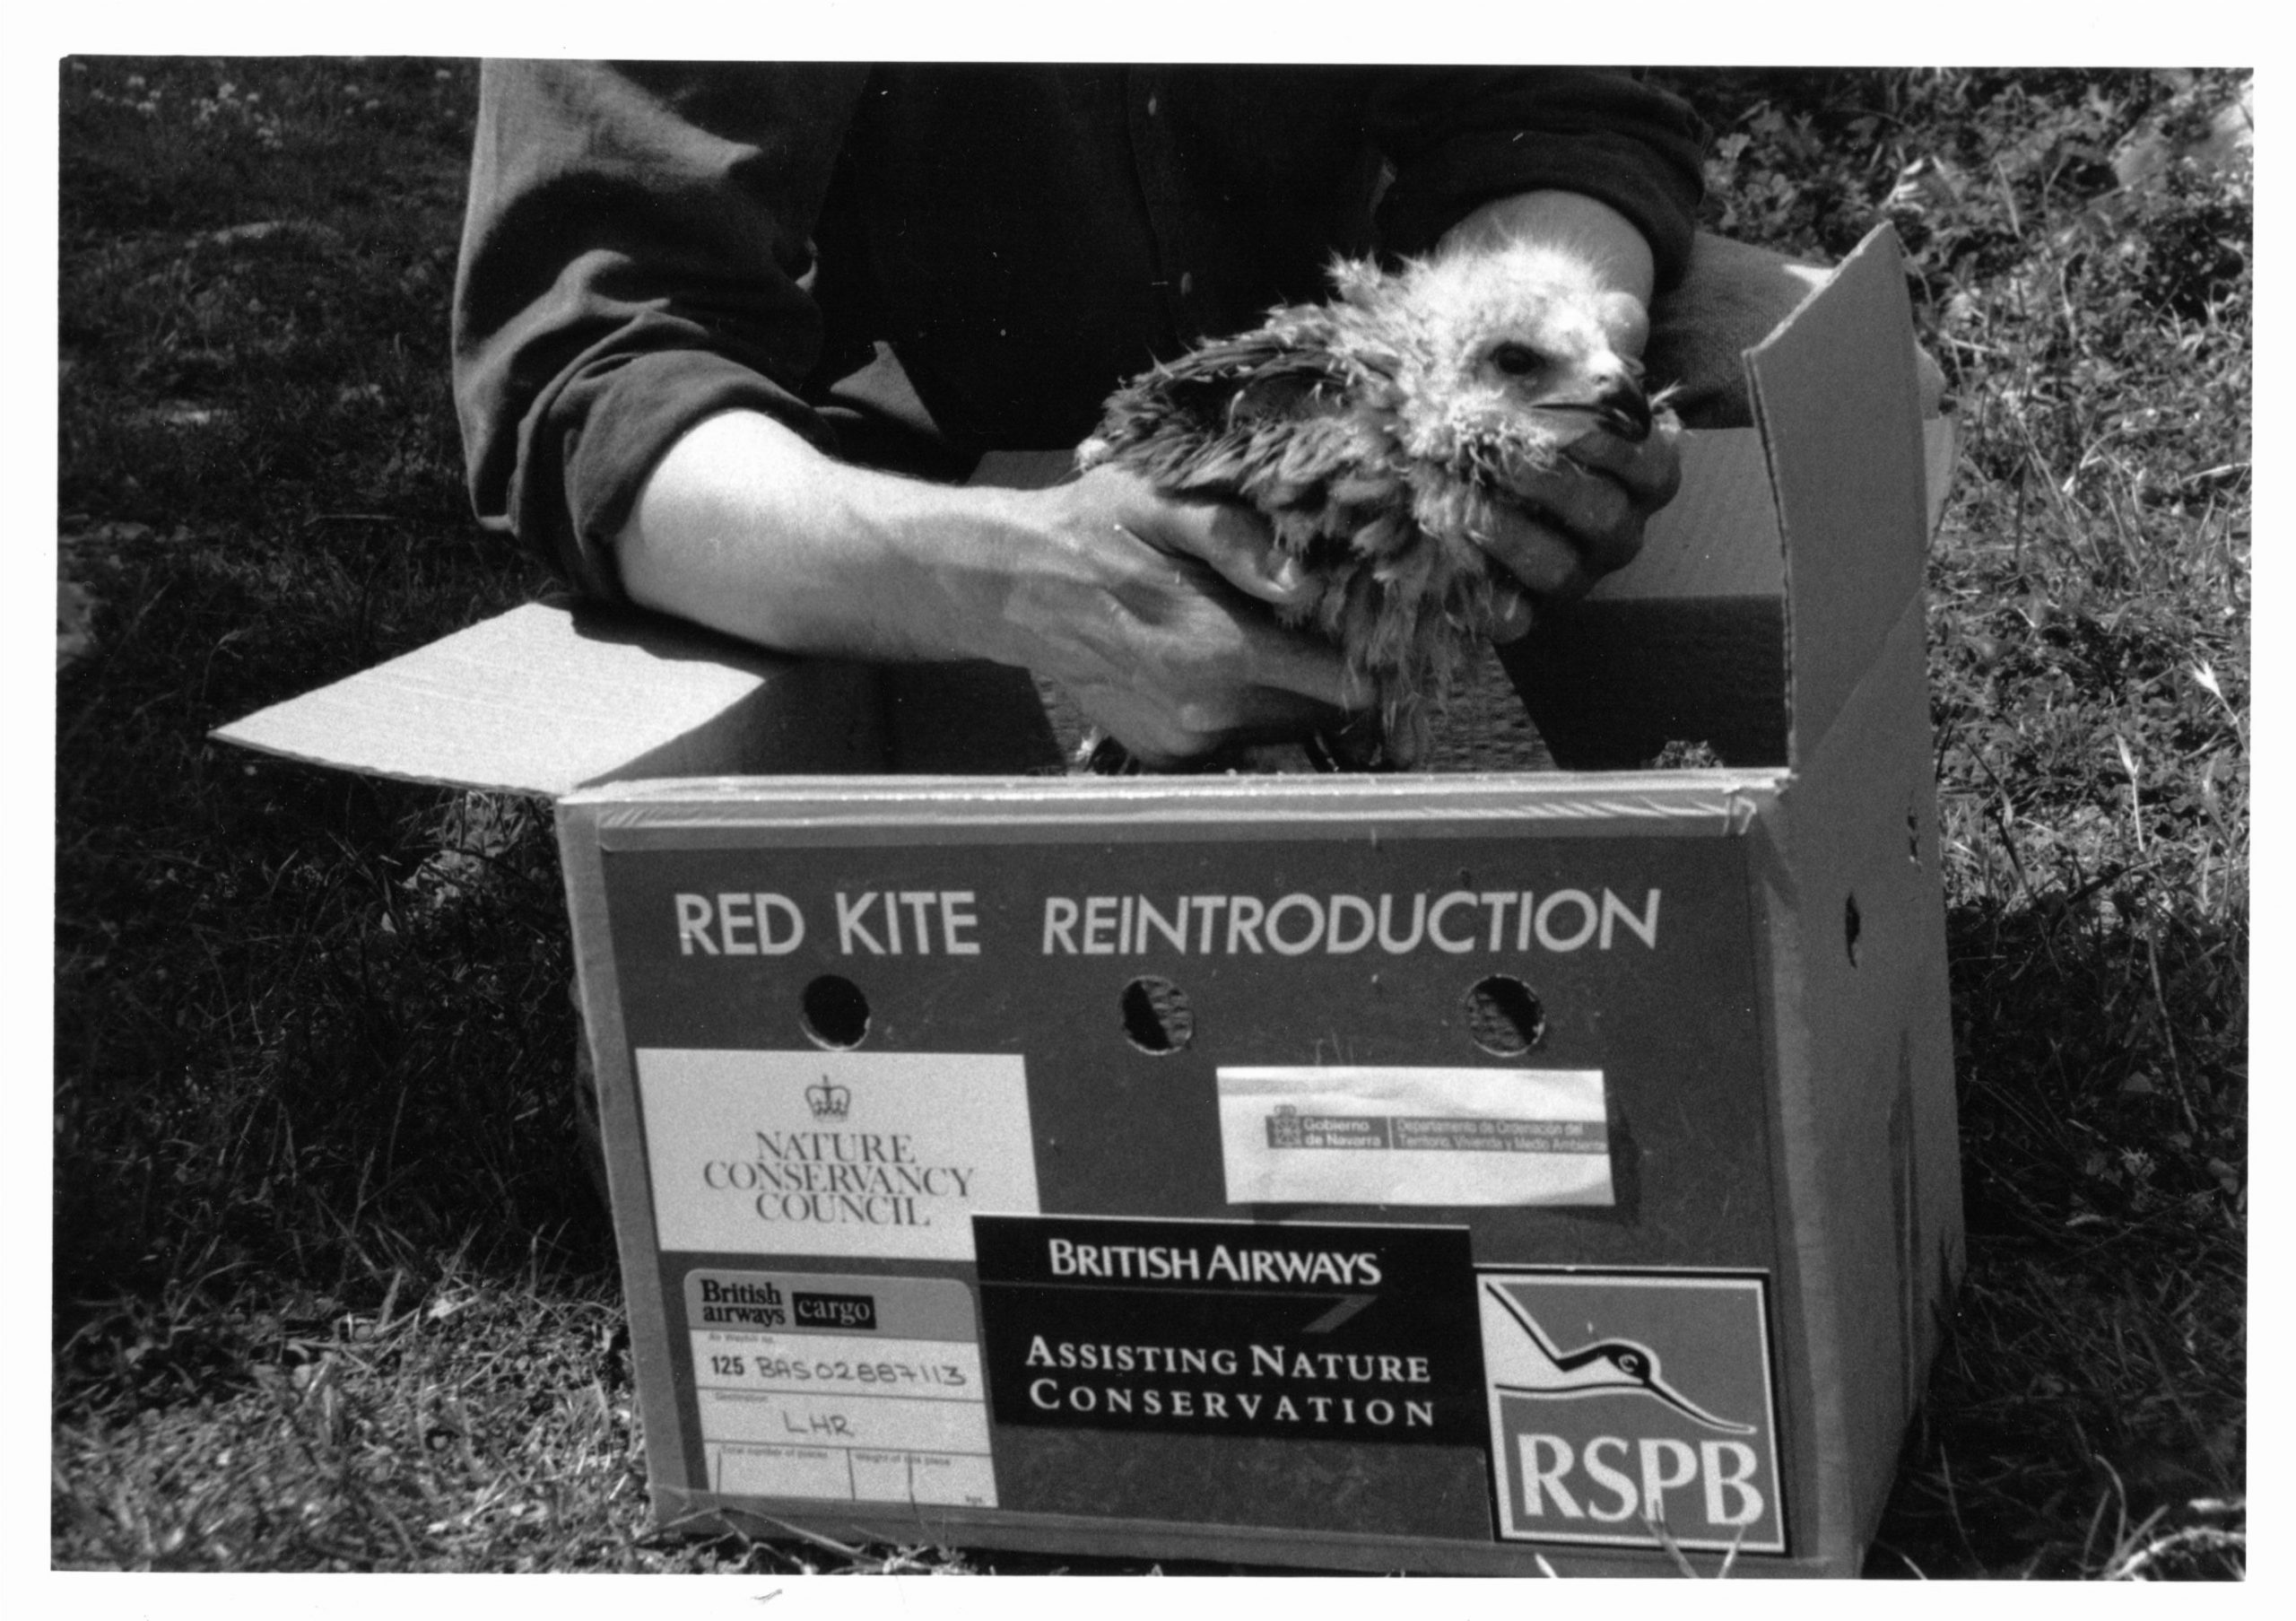 A red kite chick from the original reintroduction project. Credit: Ian Evans